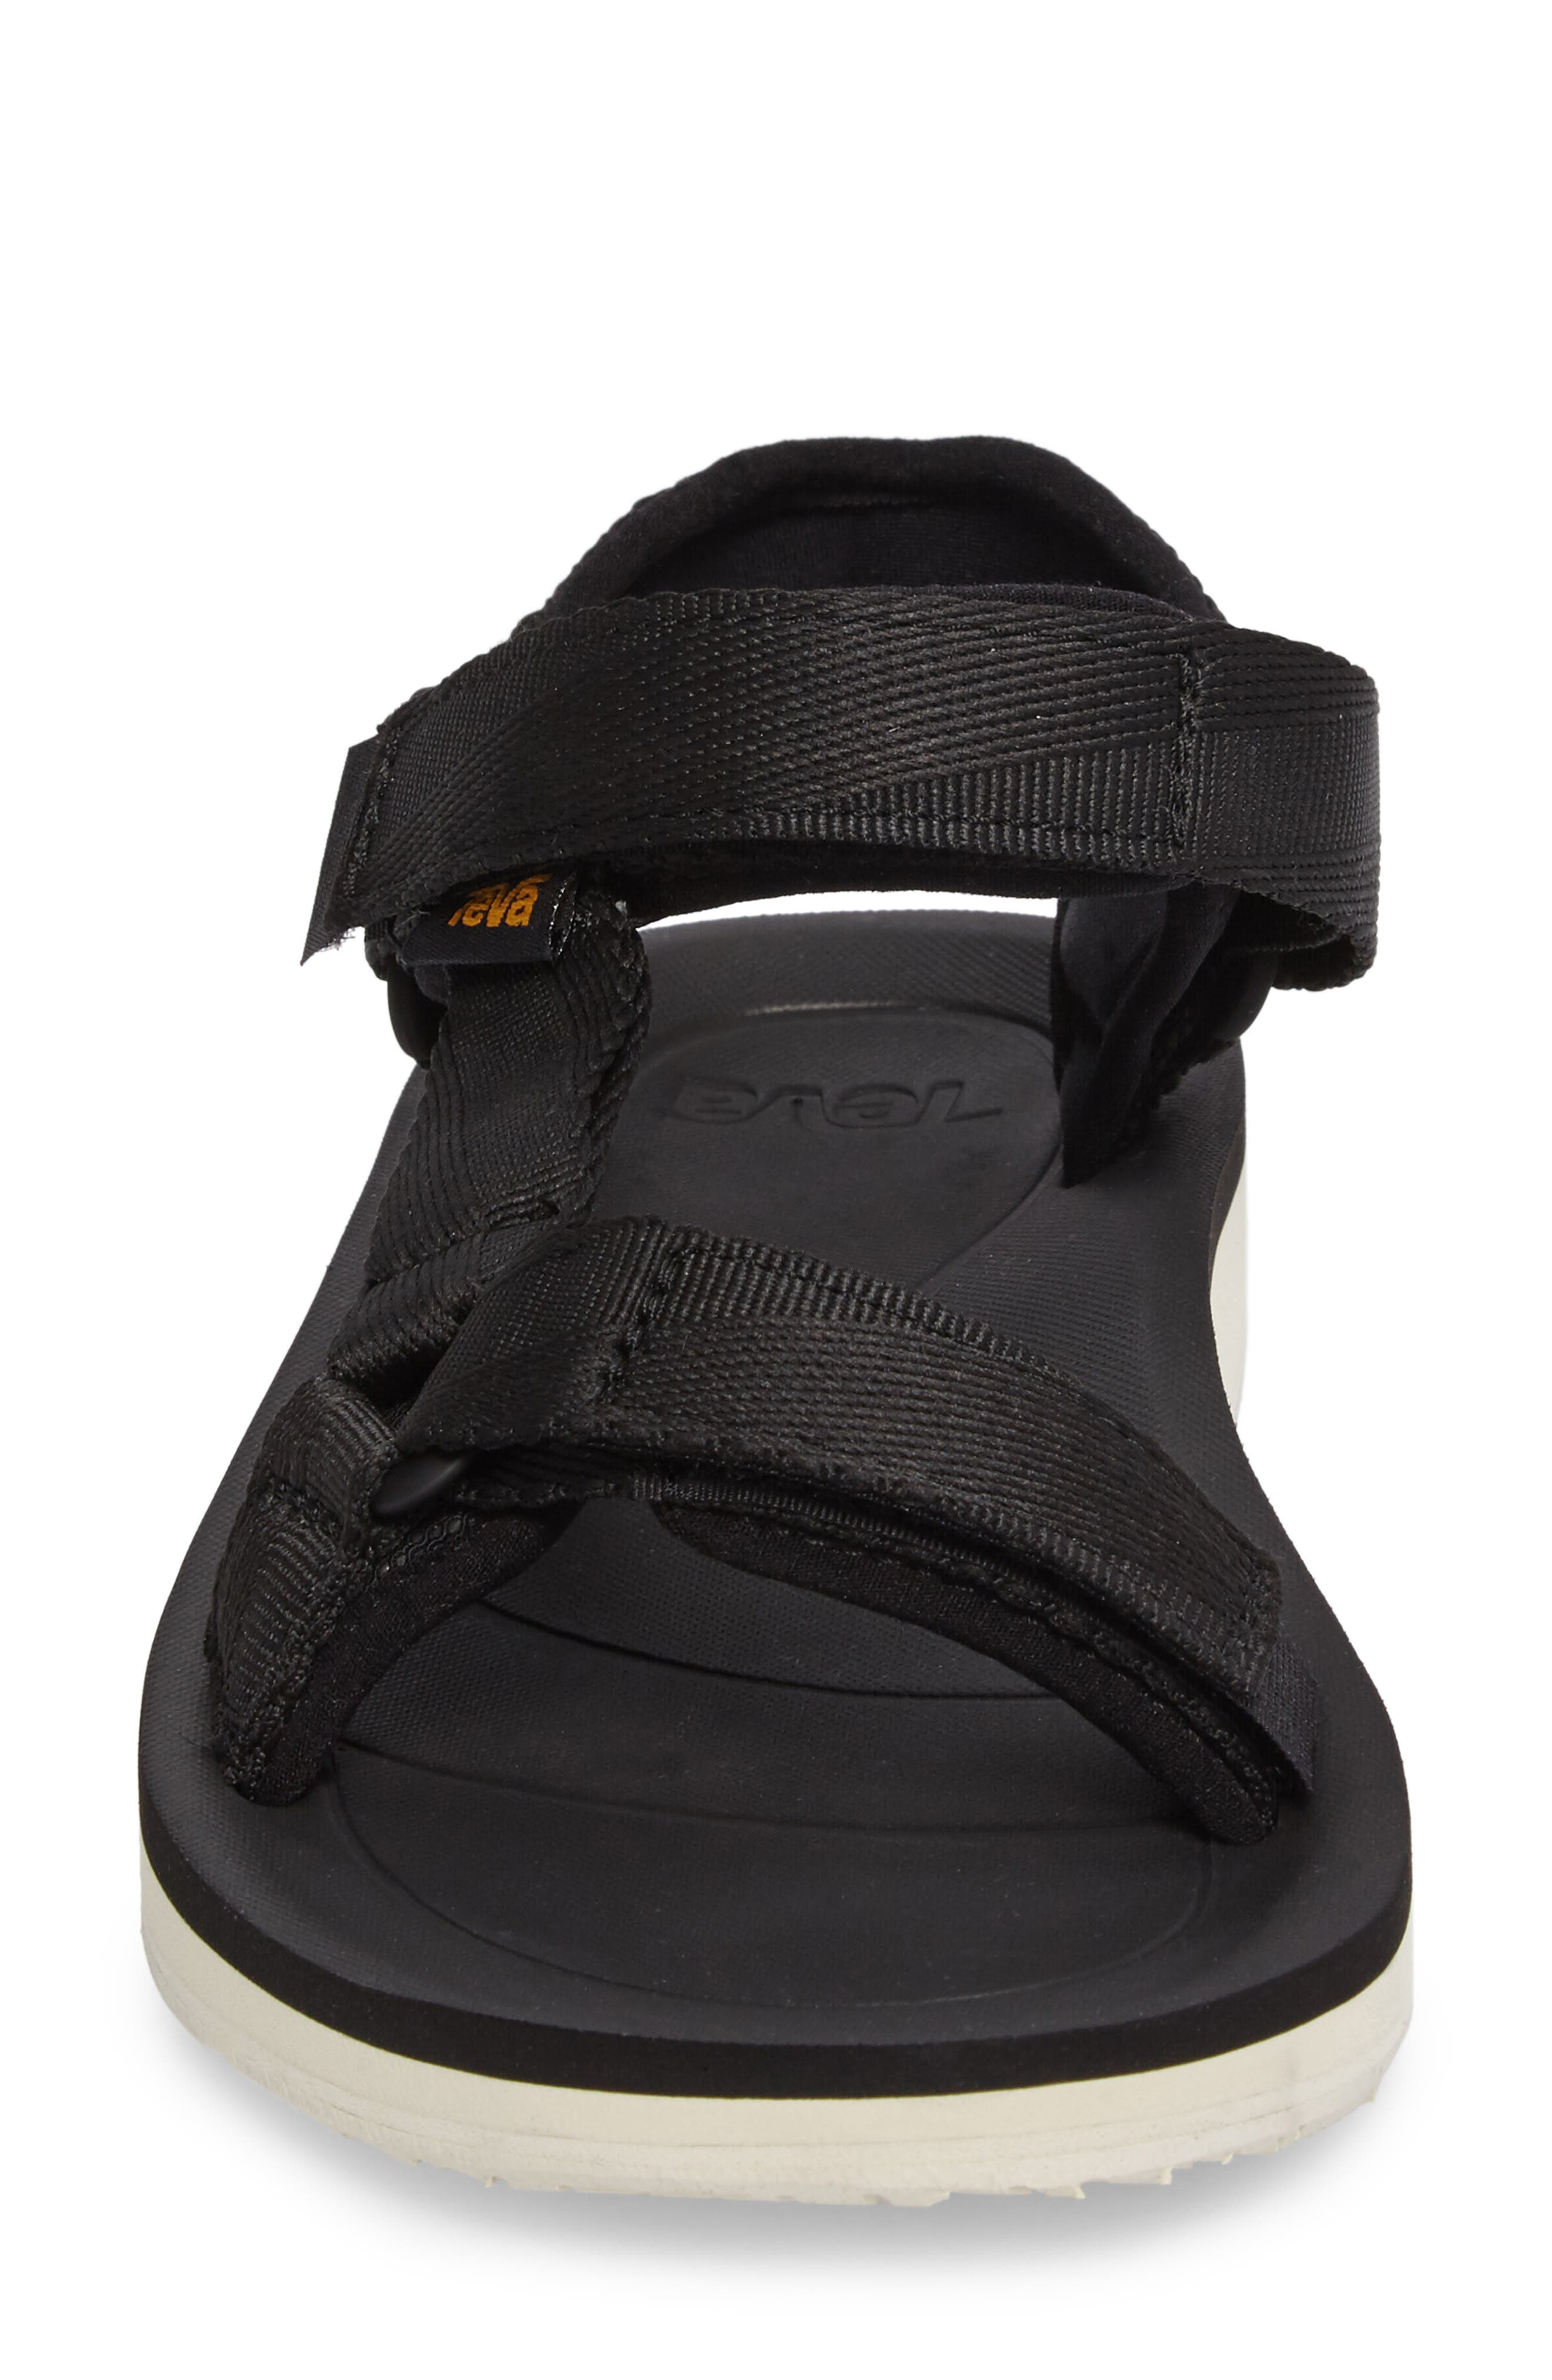 Original Universal Premier Sandal,                             Alternate thumbnail 4, color,                             BLACK FABRIC